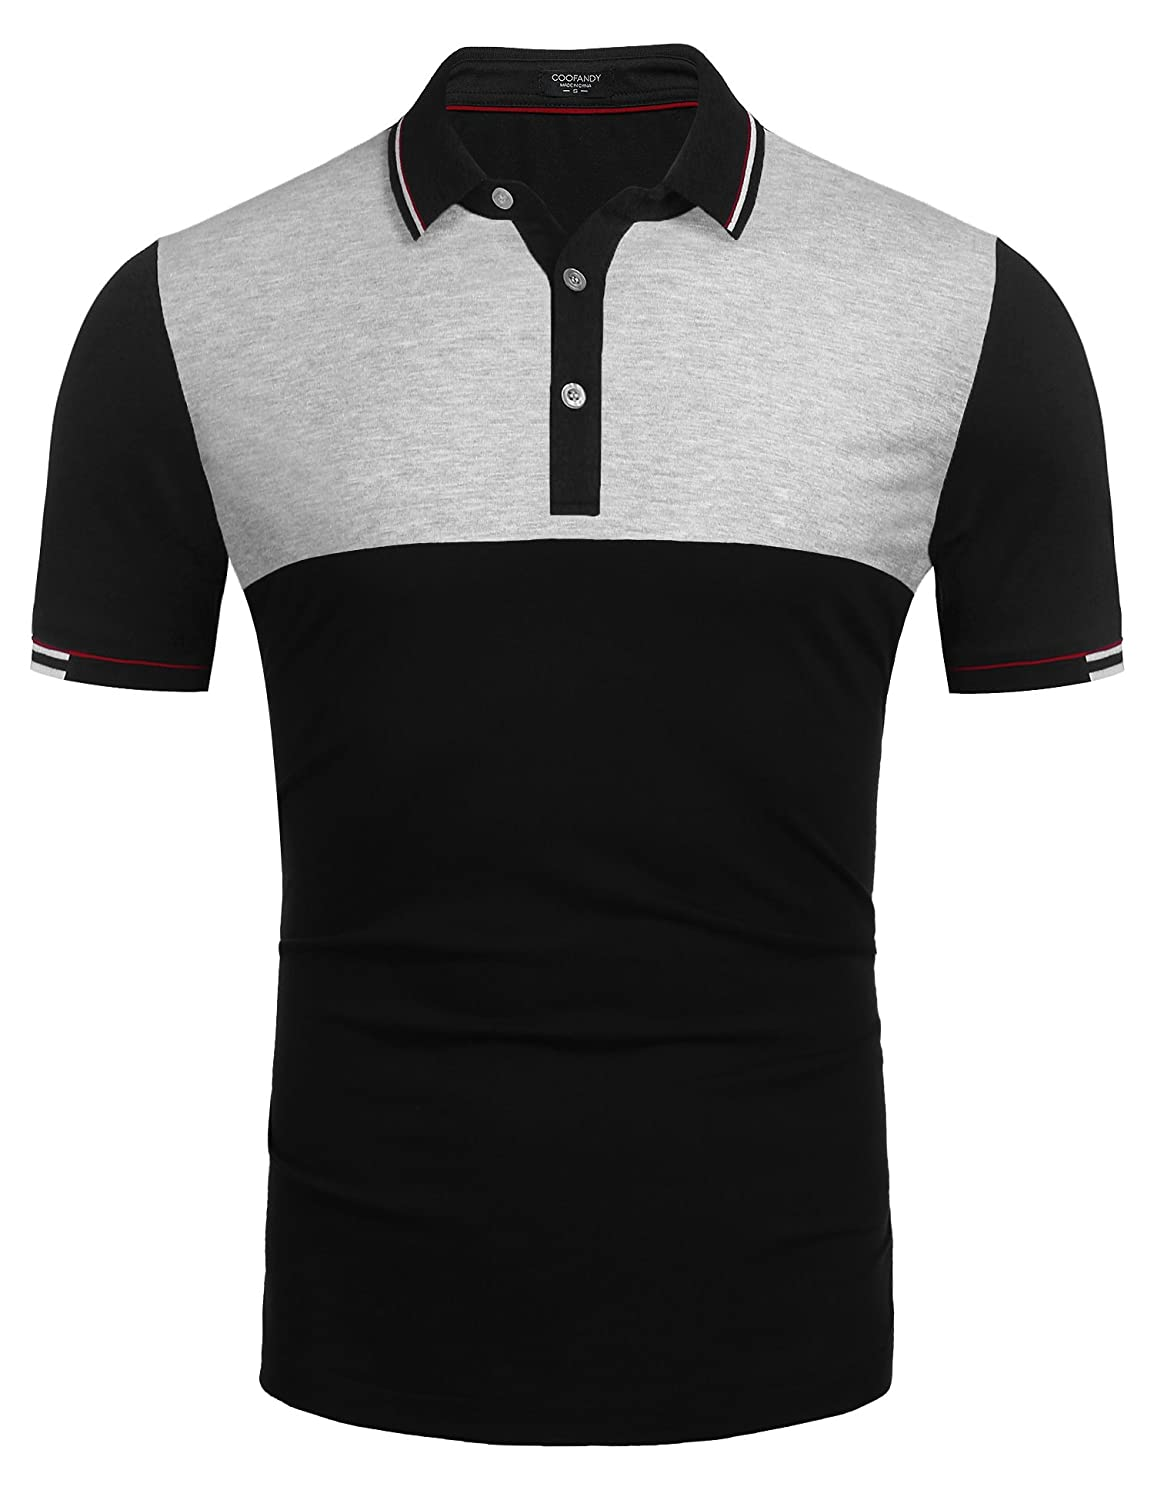 48f109c9e High quality lightweight cotton poly blen fabric provides you breathable  and comfortable wearing experience all time. Cool polo shirt design in slim  fit